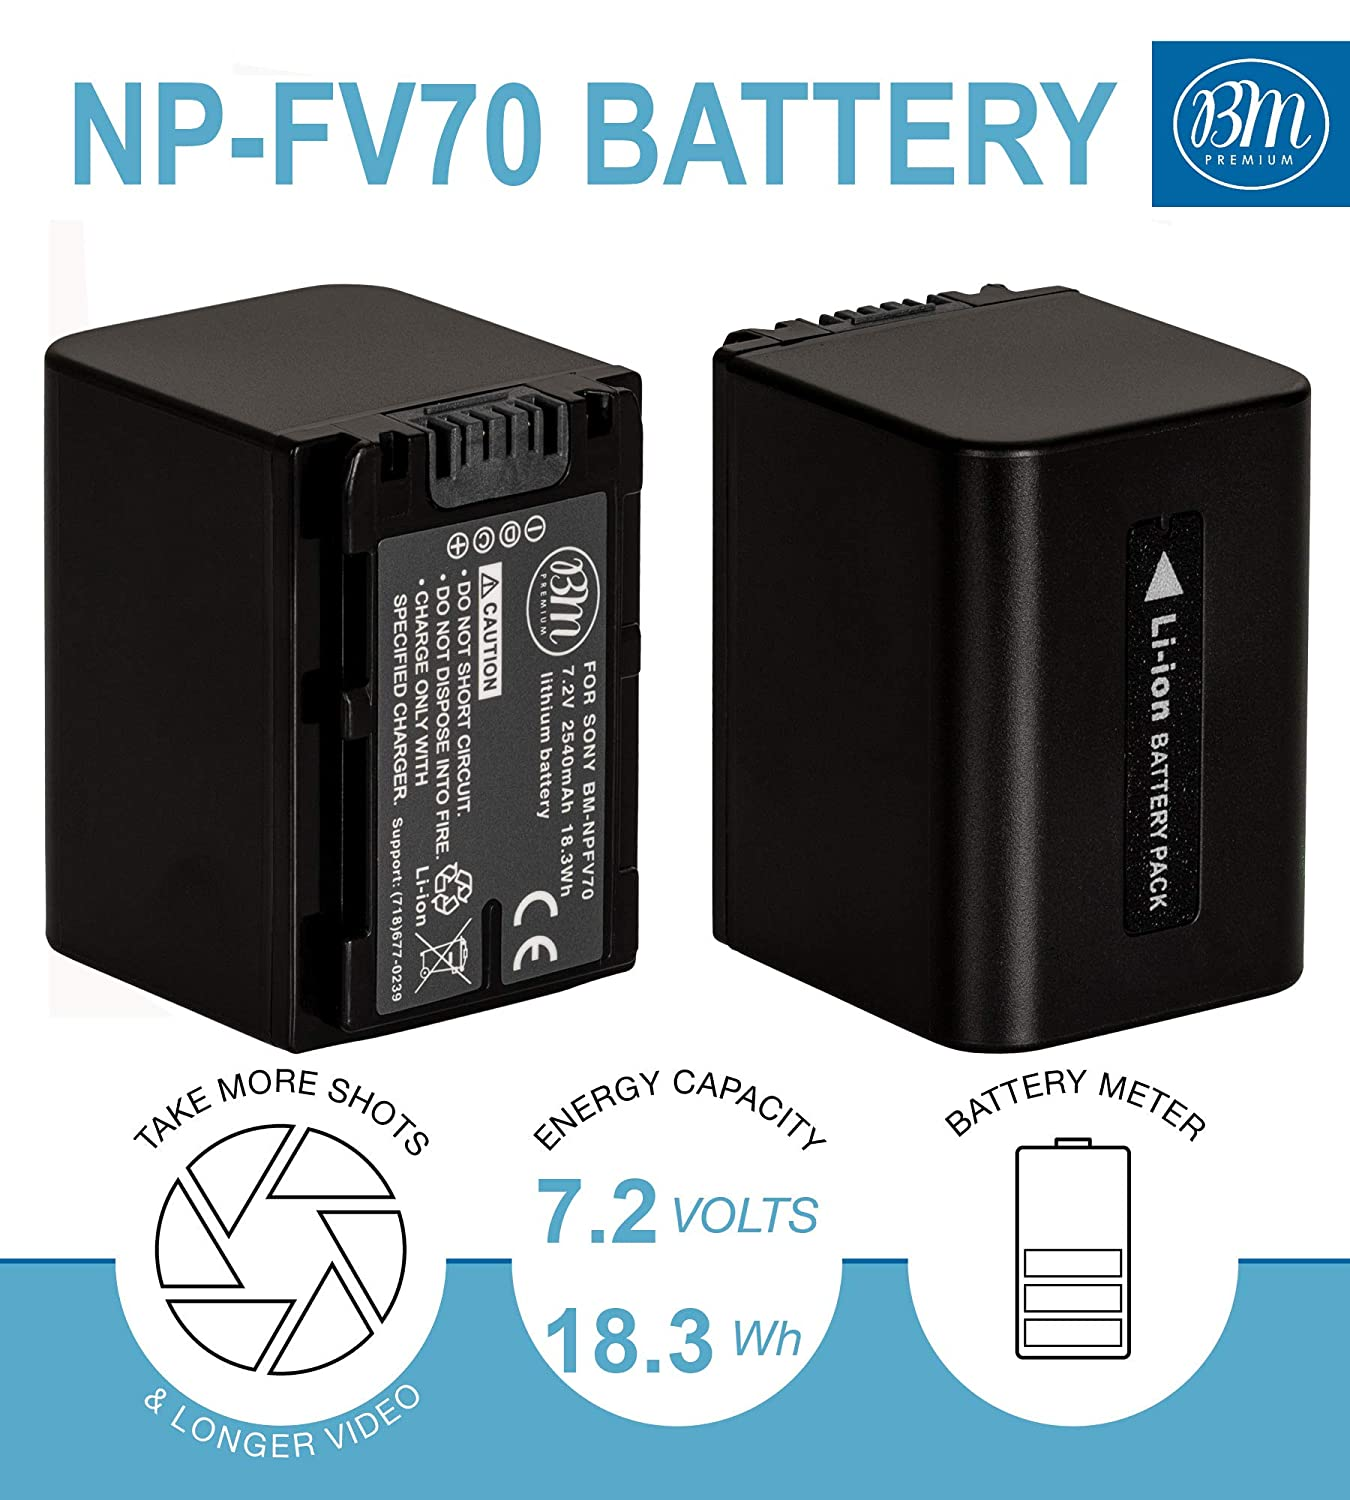 BM 2 NP-FV70 Batteries and Charger Kit for Sony FDR-AX53 FDR-AX700 HDR-CX455//B HDR-CX675//B HDR-CX900 HDR-PJ340 HDR-PJ540 HDR-PJ670//B HDR-PJ810 FDR-AX33//B FDR-AX100 Handycam Camcorder